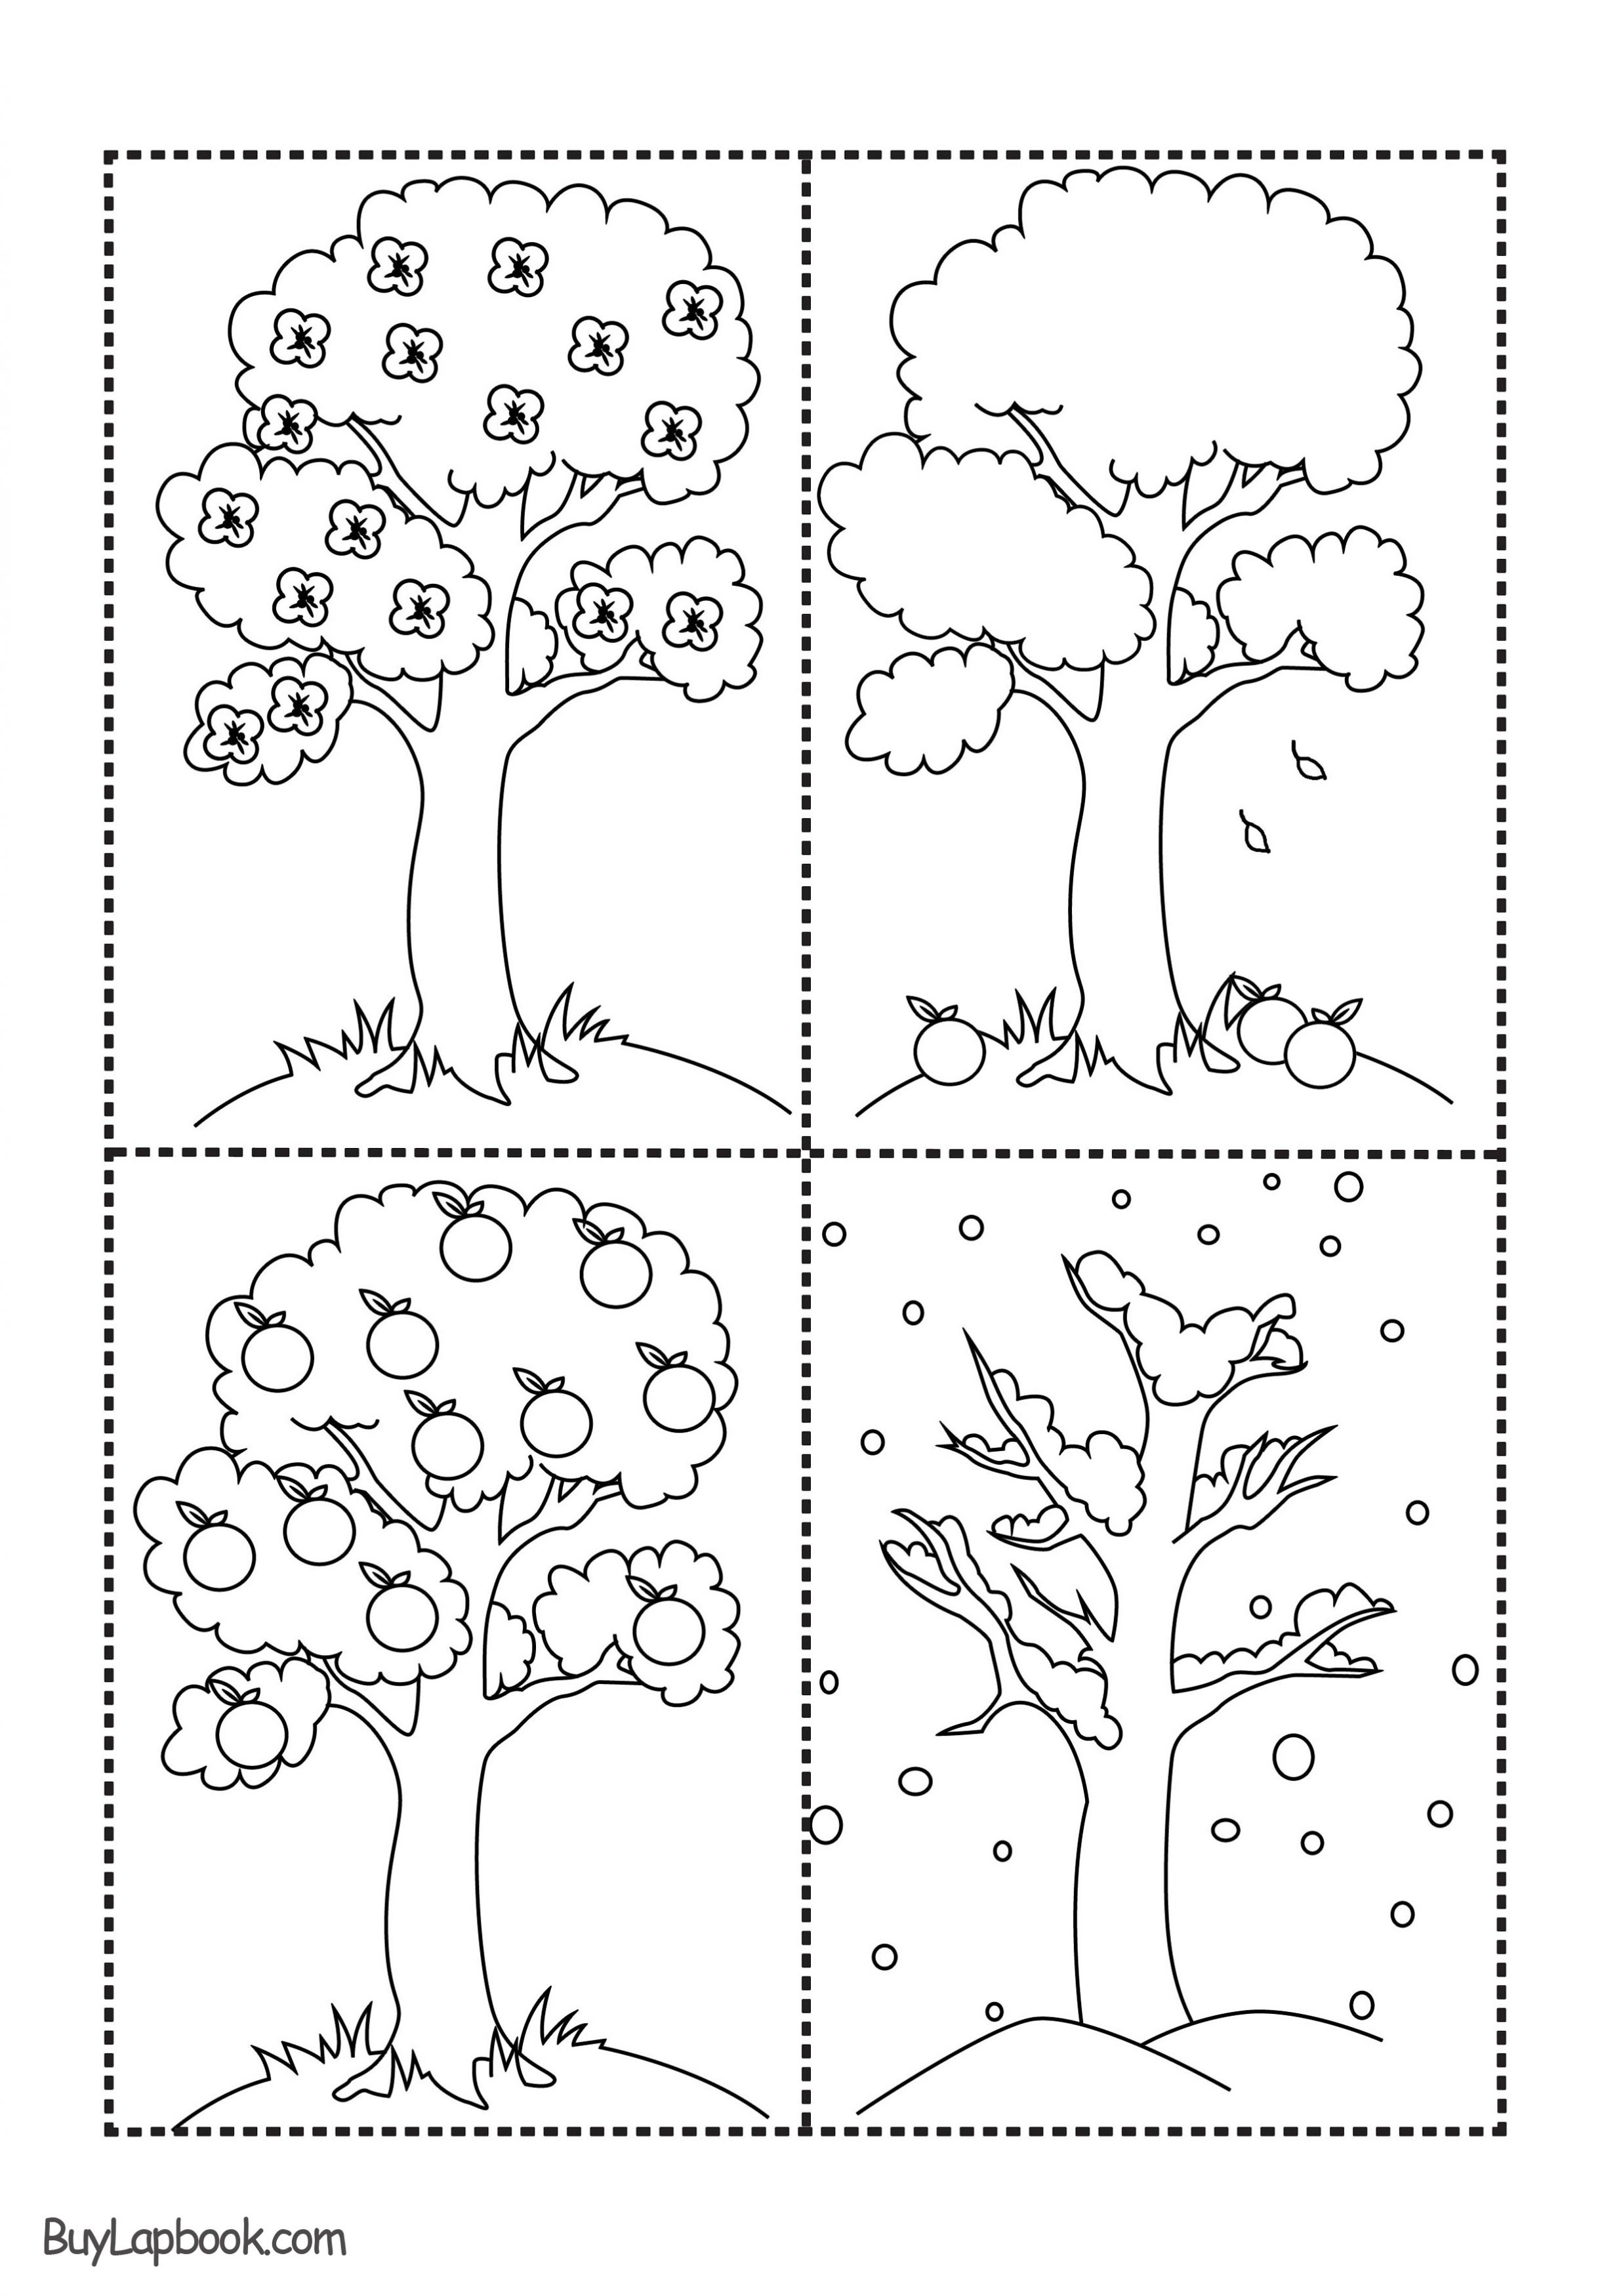 The Four Seasons Of The Apple Tree Printables Buylapbook